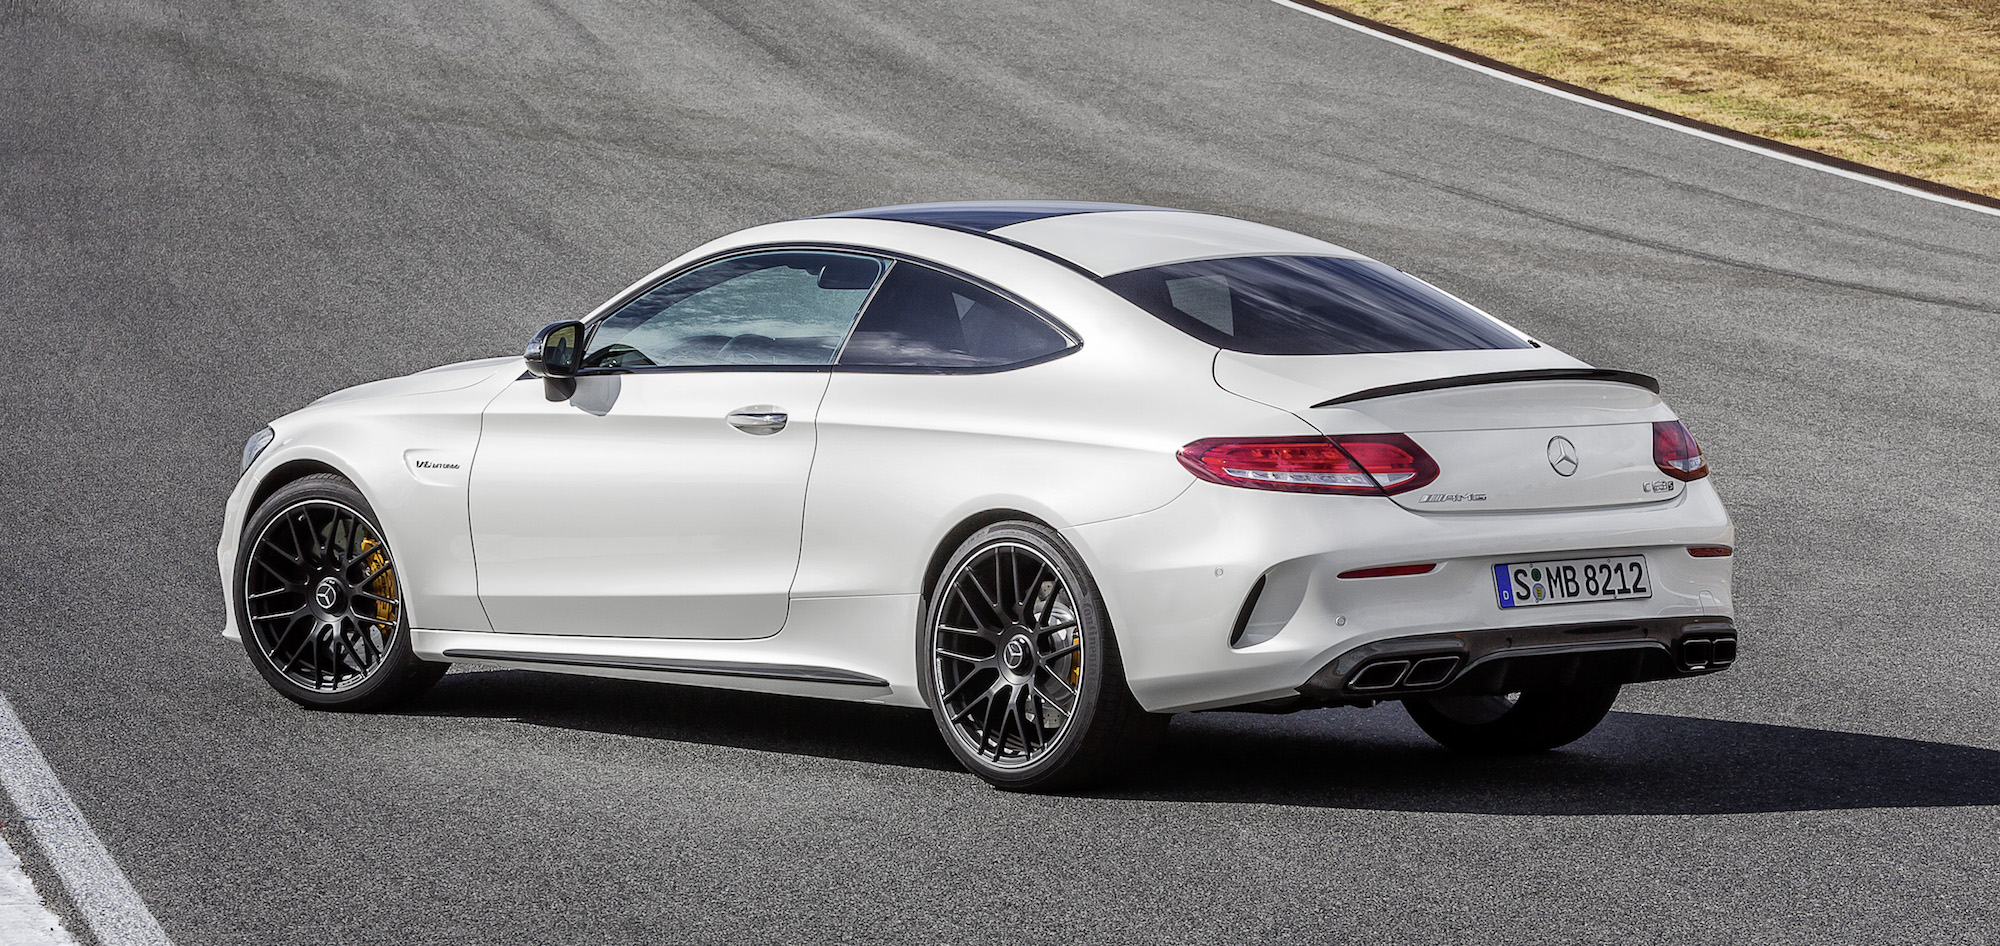 THE BEAST! 375Kw AMG C63 S Coupe, outmuscling the Yanks